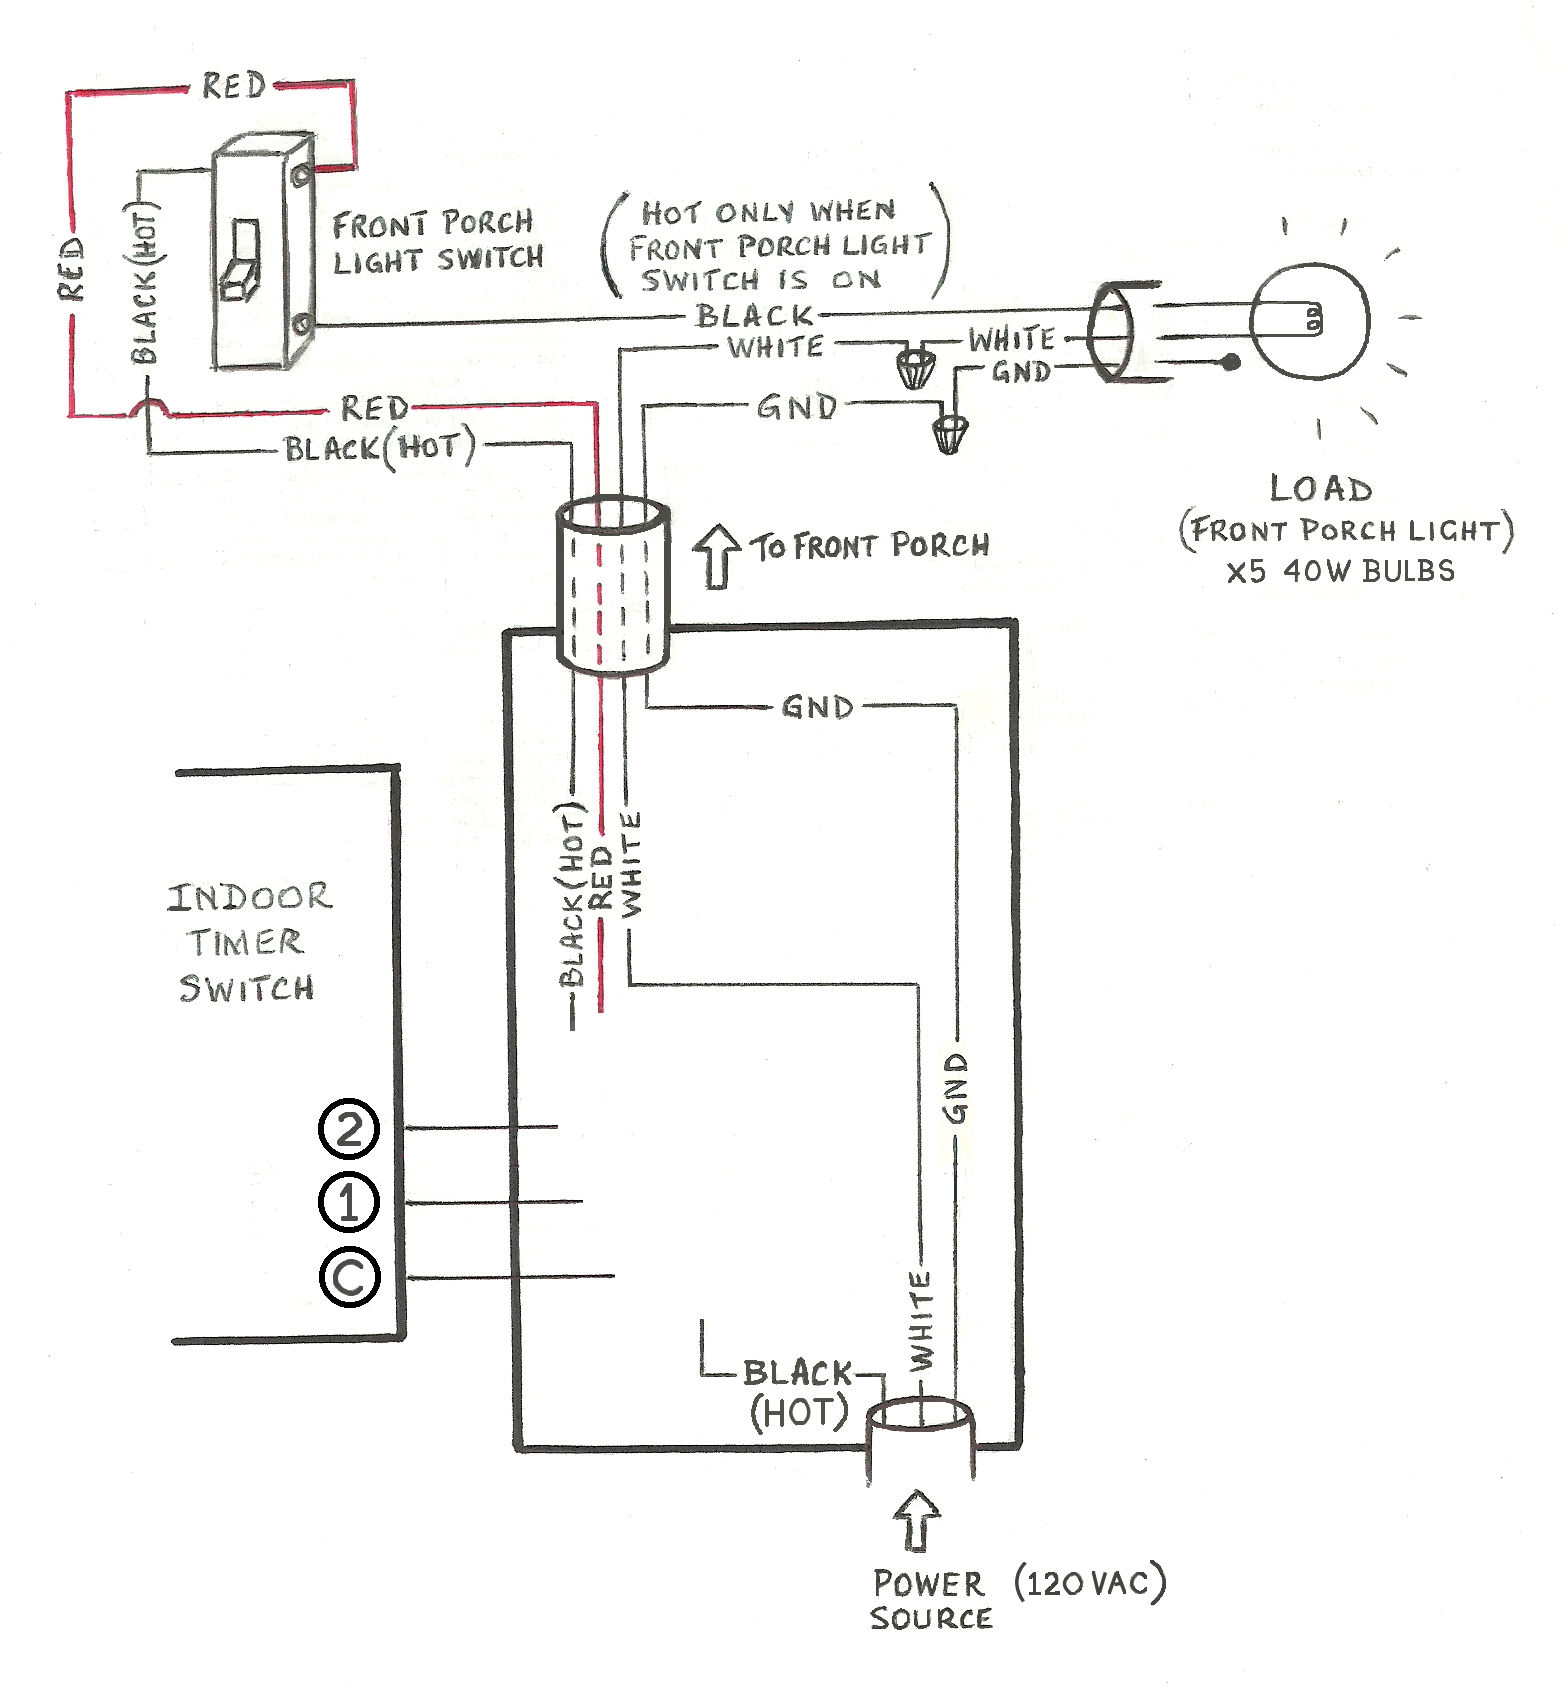 hight resolution of need help wiring a 3 way honeywell digital timer switch home wiring timer switch for outside lights